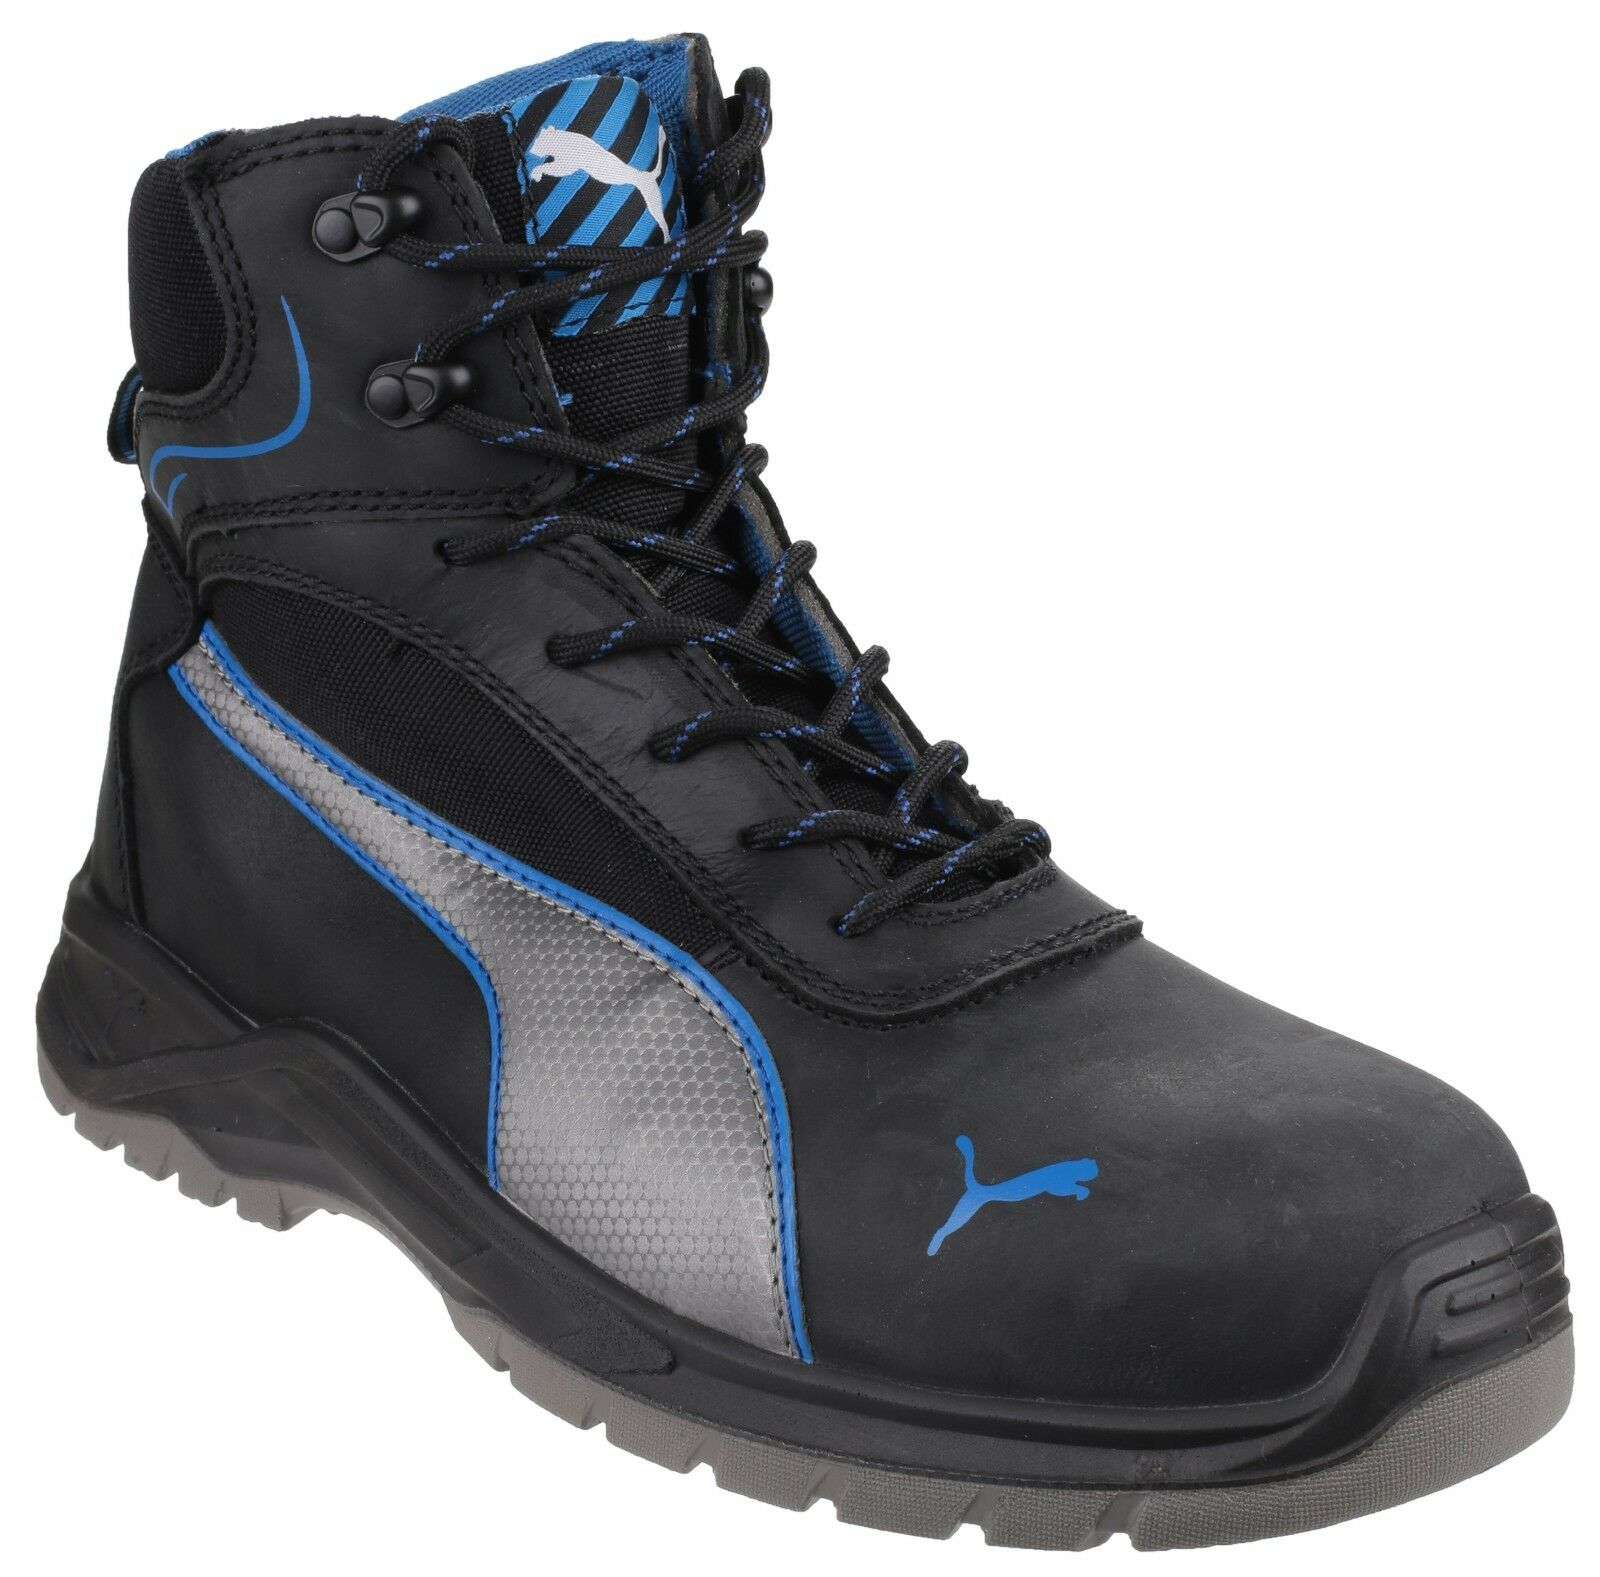 Puma Safety da uomo Nero Athletic sicurezza Boot VARIE MISURE ATOMIC met 633600